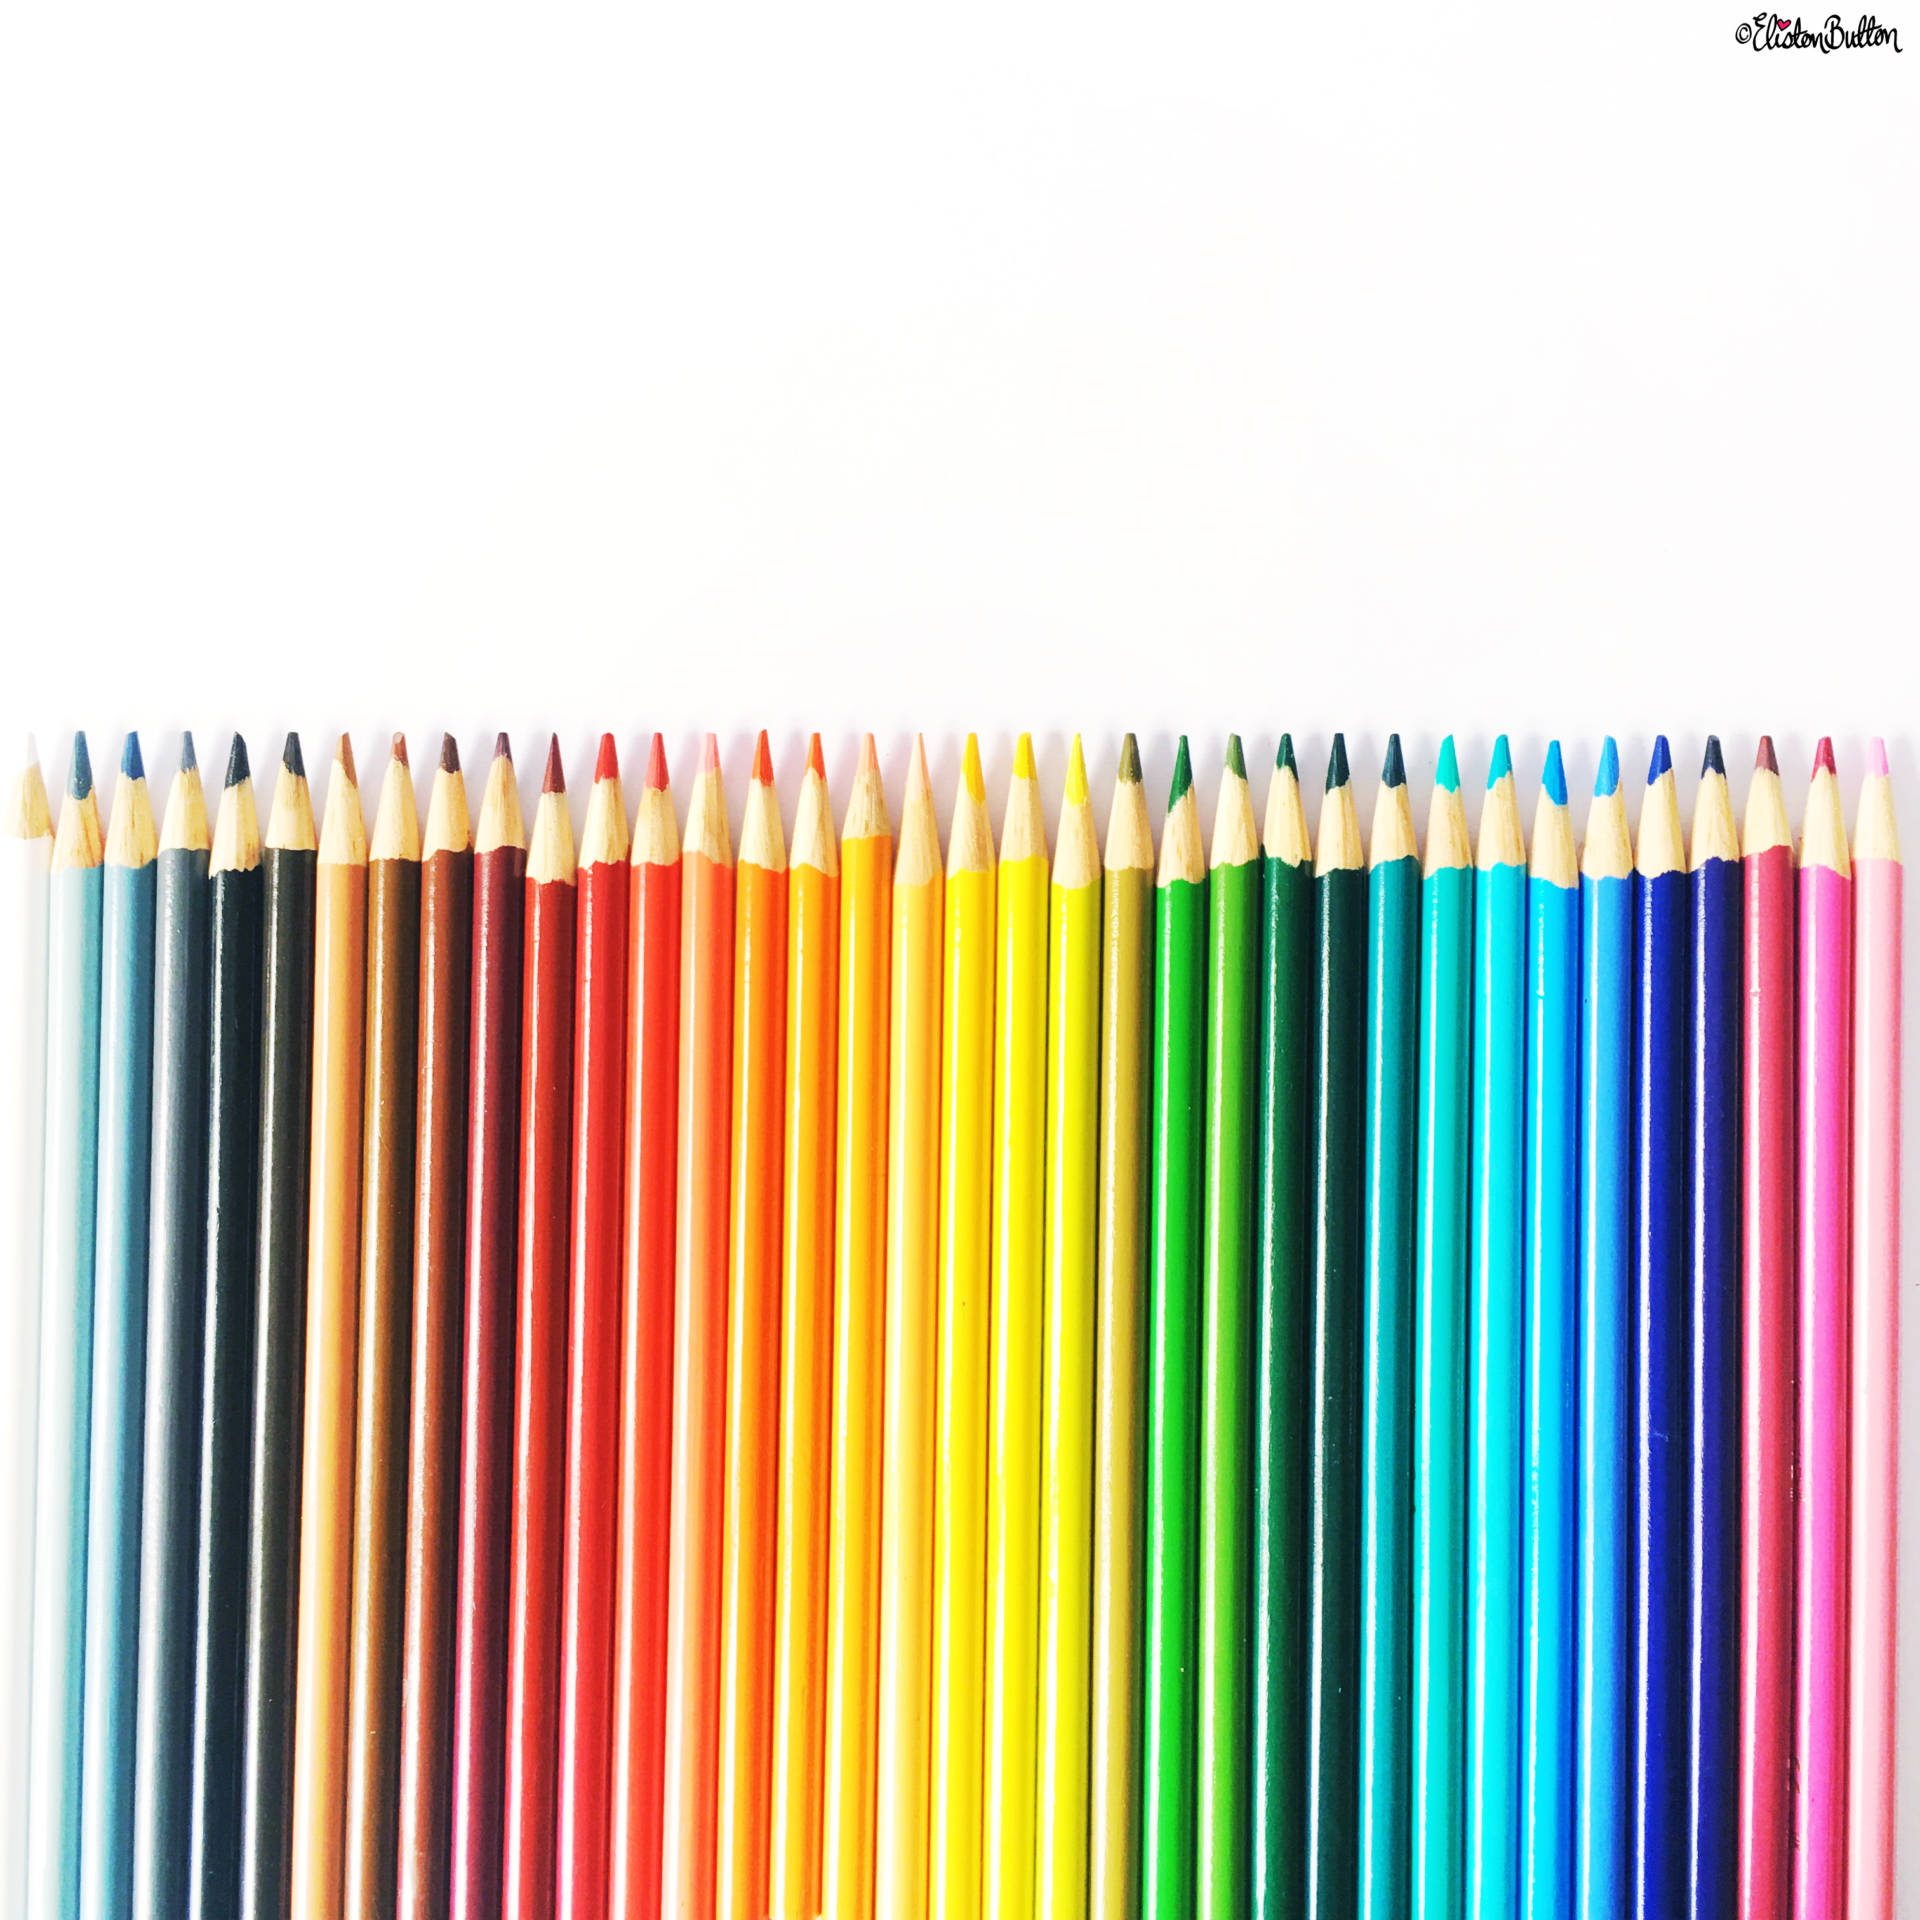 Day 16 - P is For...Pencils - A Rainbow of Colouring Pencils - Photo-a-Day - July 2016 - Eliston Button A-Z of Craft at www.elistonbutton.com - Eliston Button - That Crafty Kid – Art, Design, Craft & Adventure.